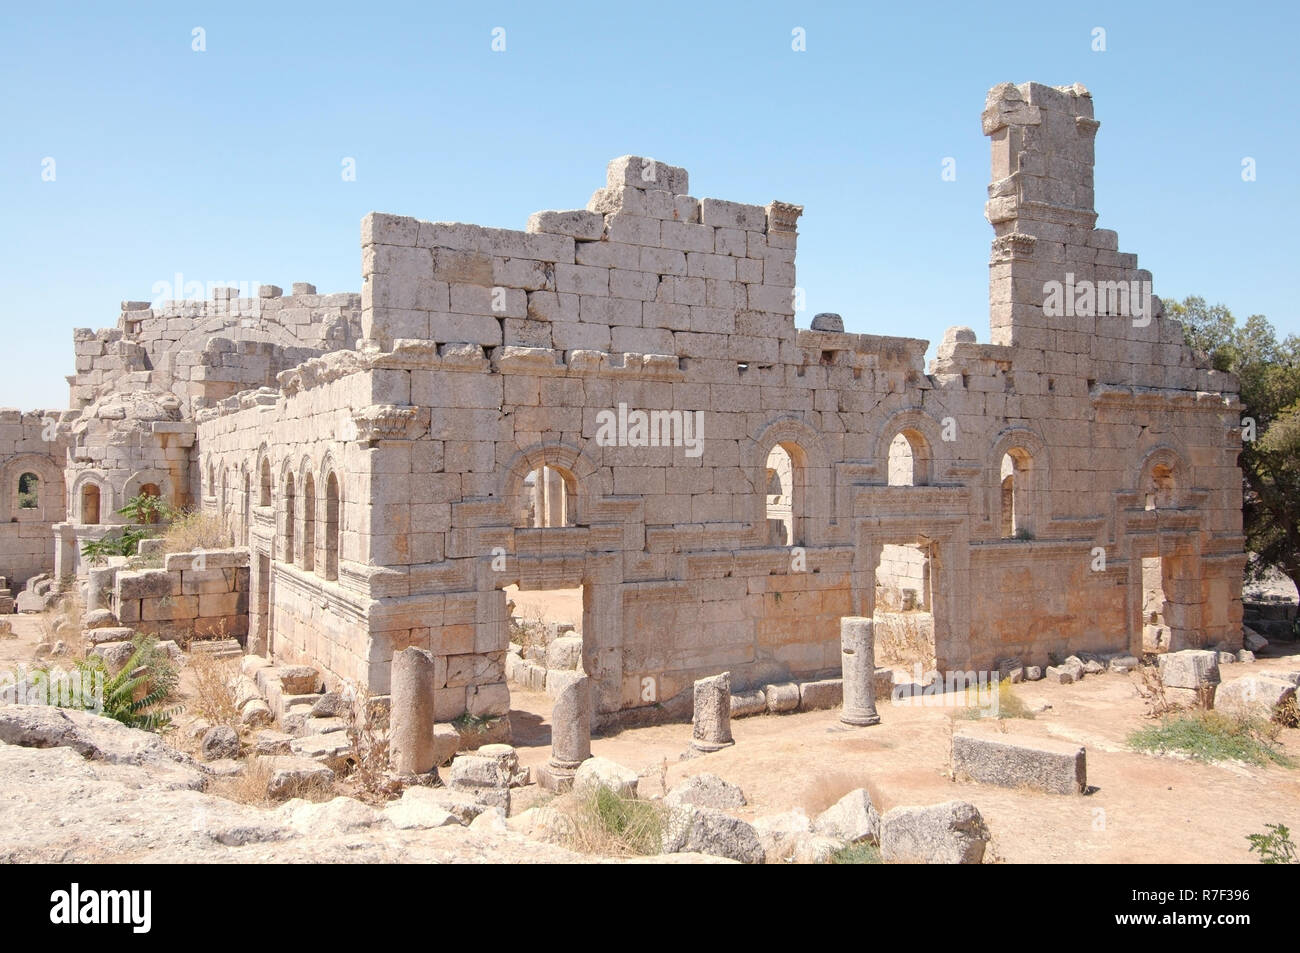 Ruins of the Church of Saint Simeon Stylites, Aleppo Governorate, Syria - Stock Image